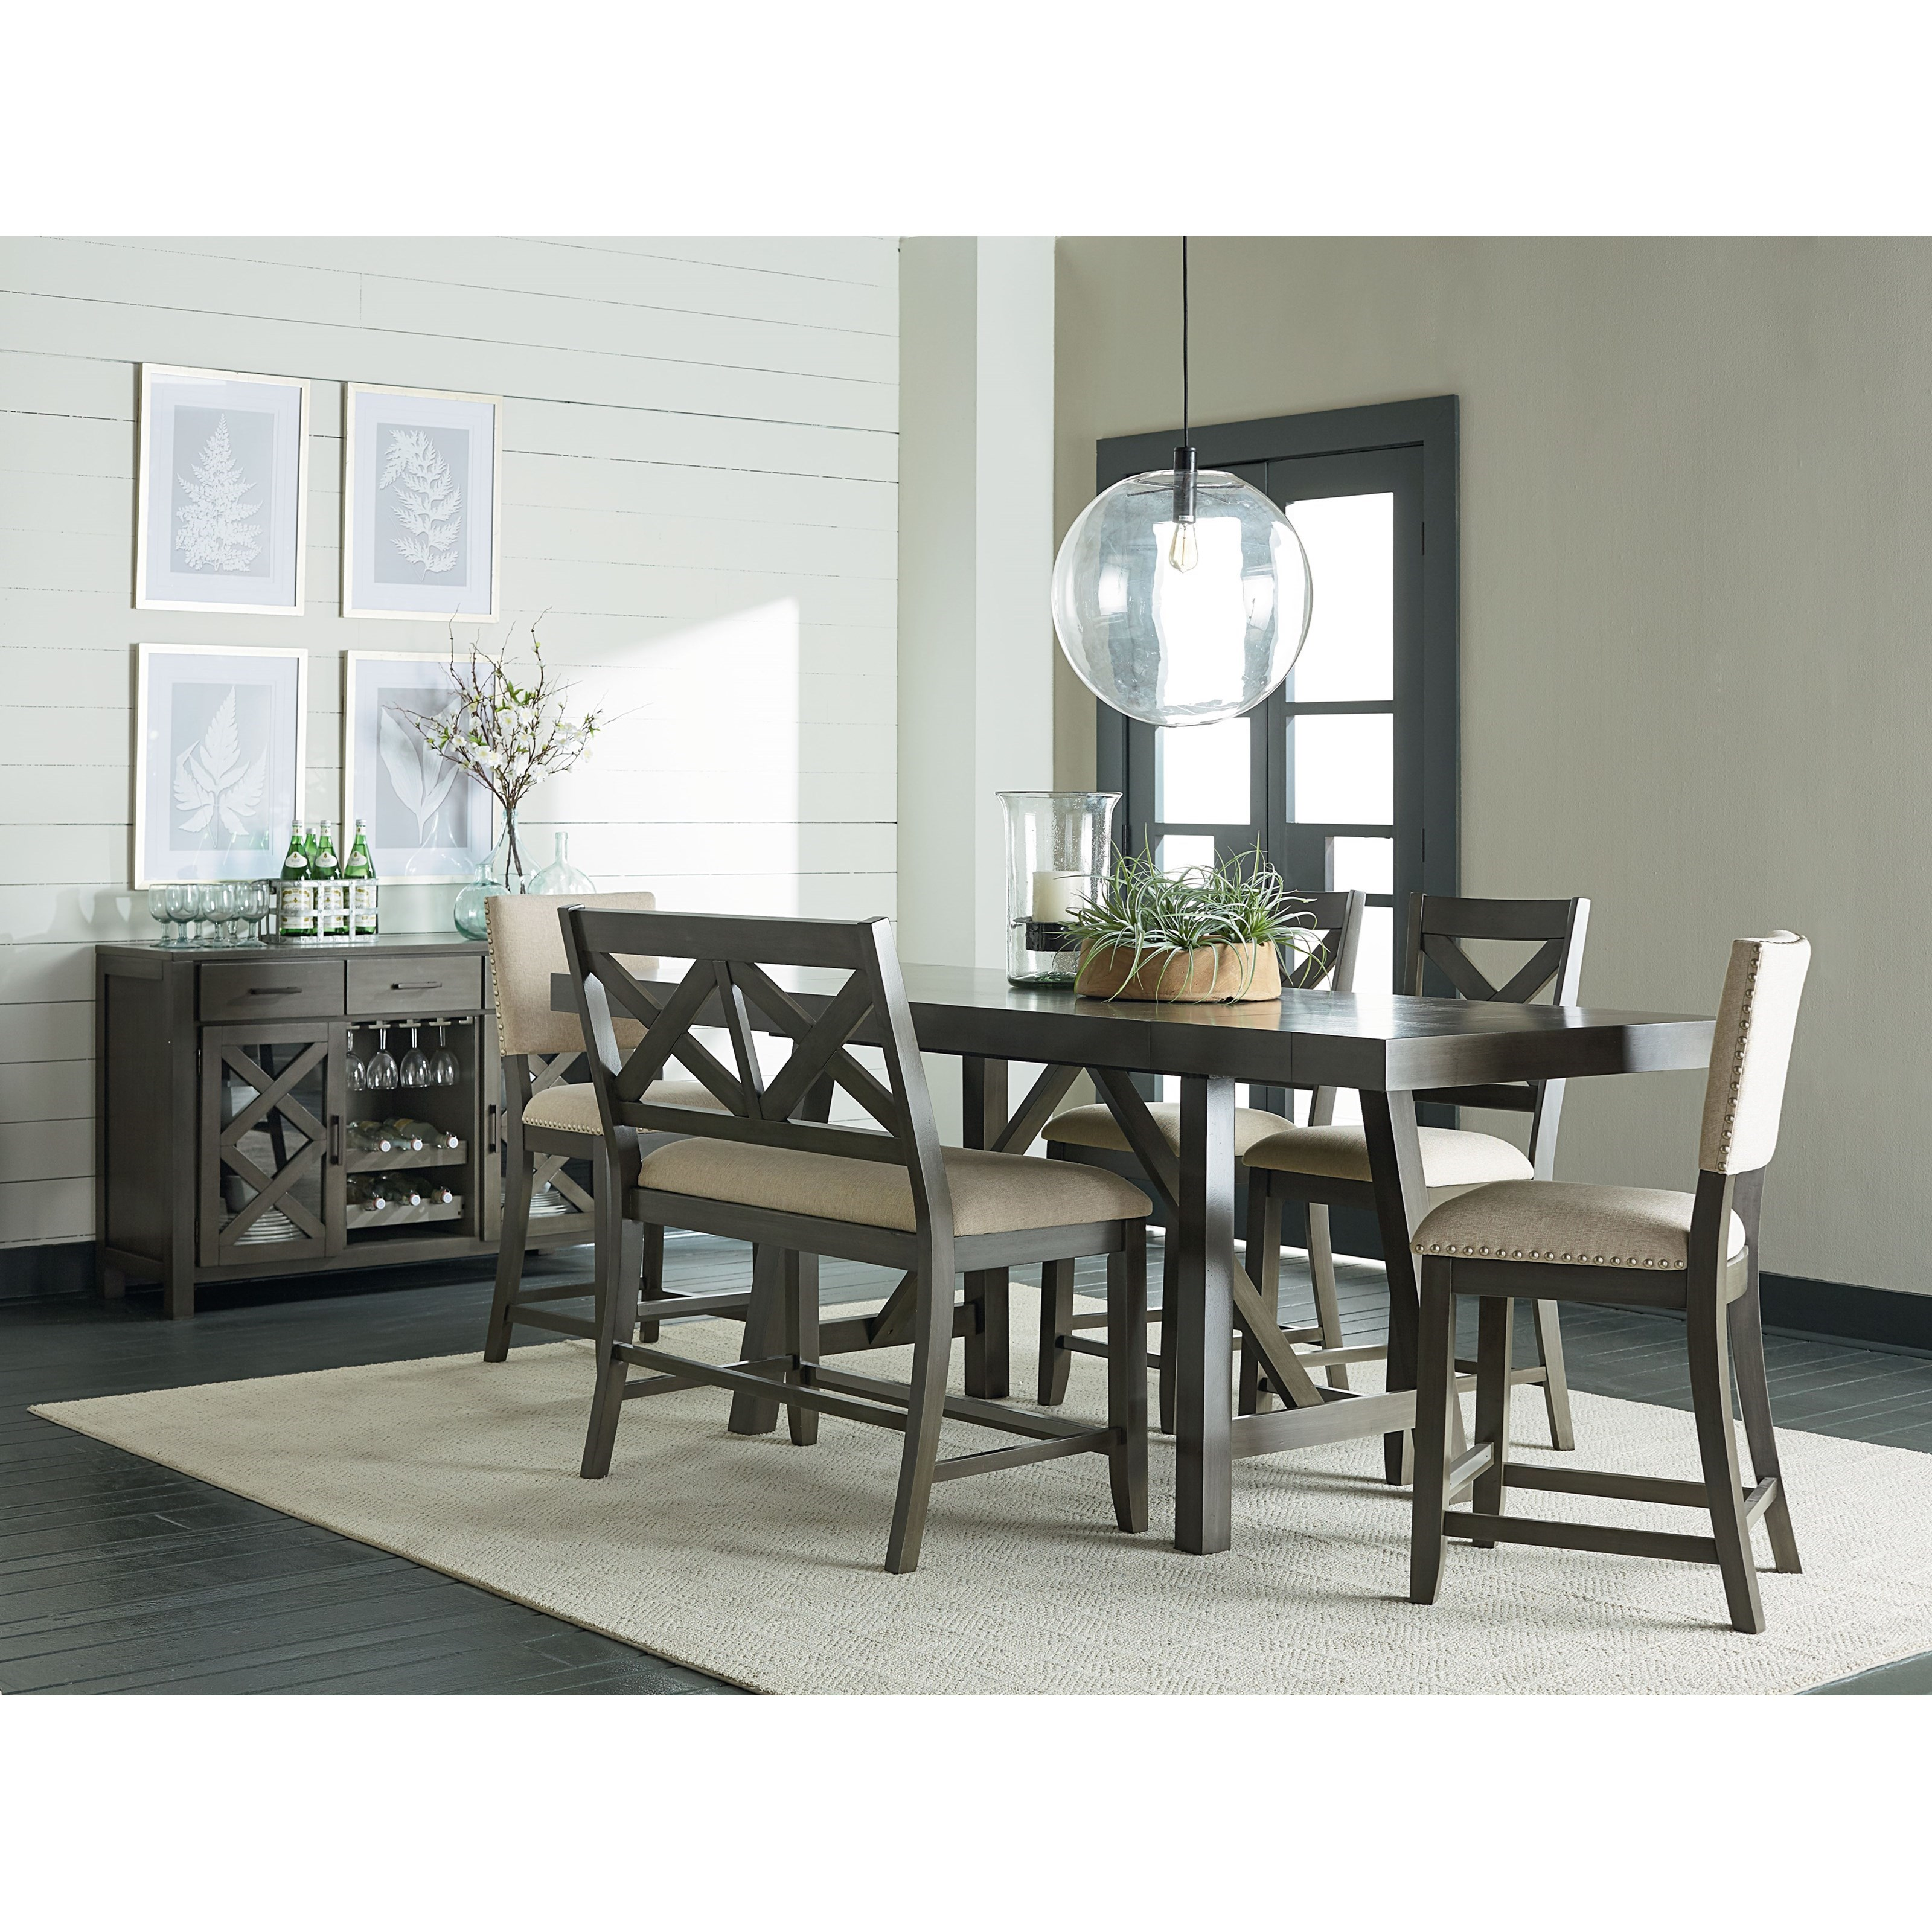 Casual Dining Room Group By Standard Furniture Wolf And Gardiner Wolf Furniture